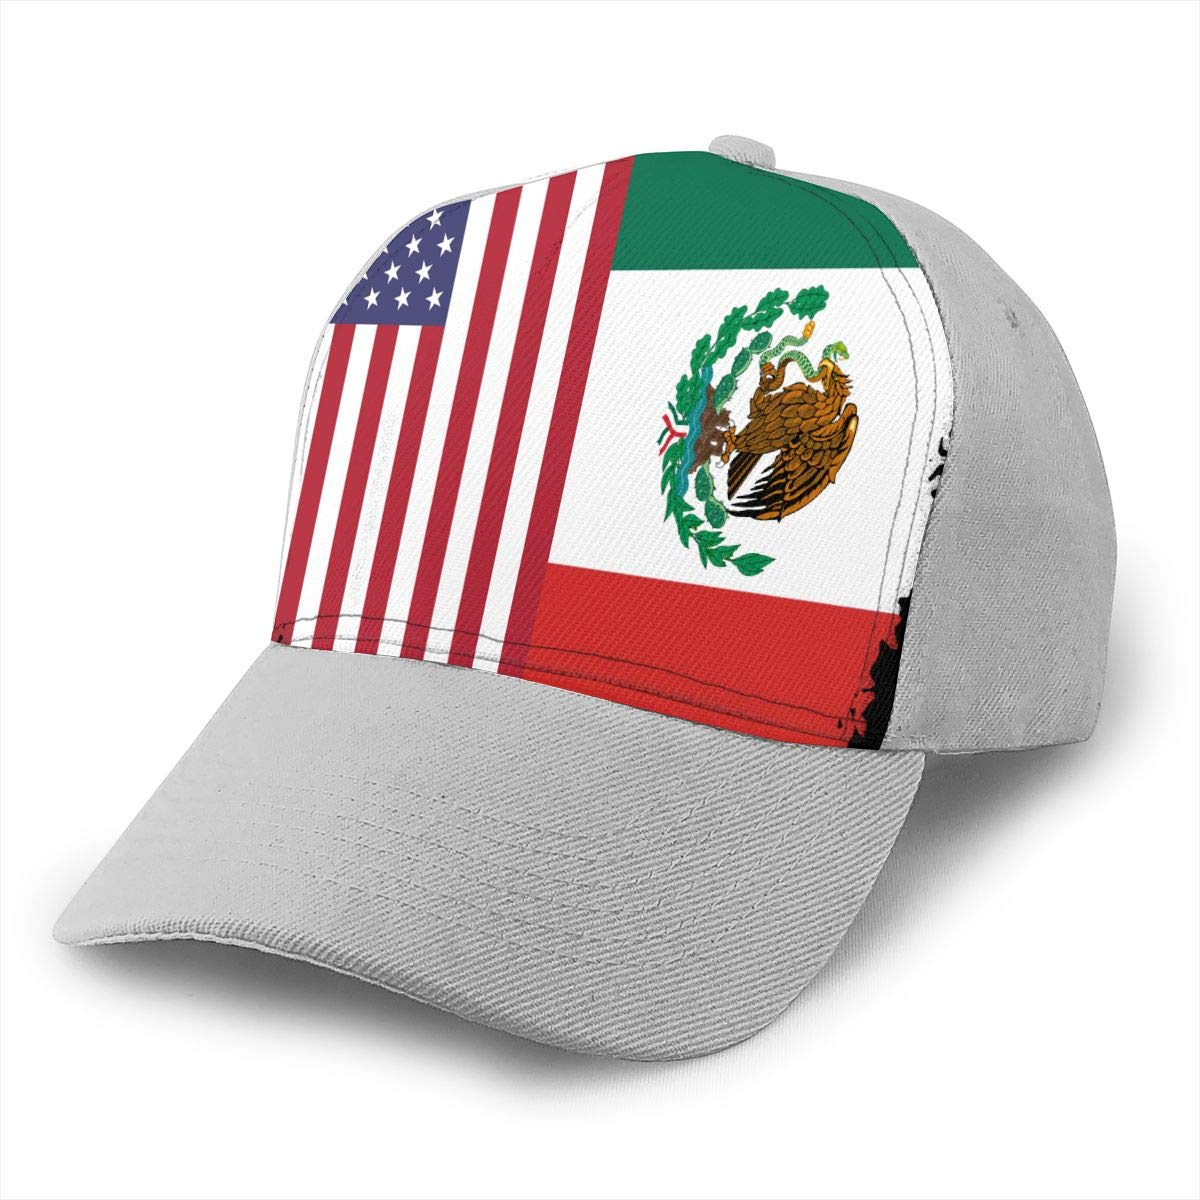 Y94OIW@MAO Mexican American Flag Trucker Hat for Men and Women Cotton Sports Cap